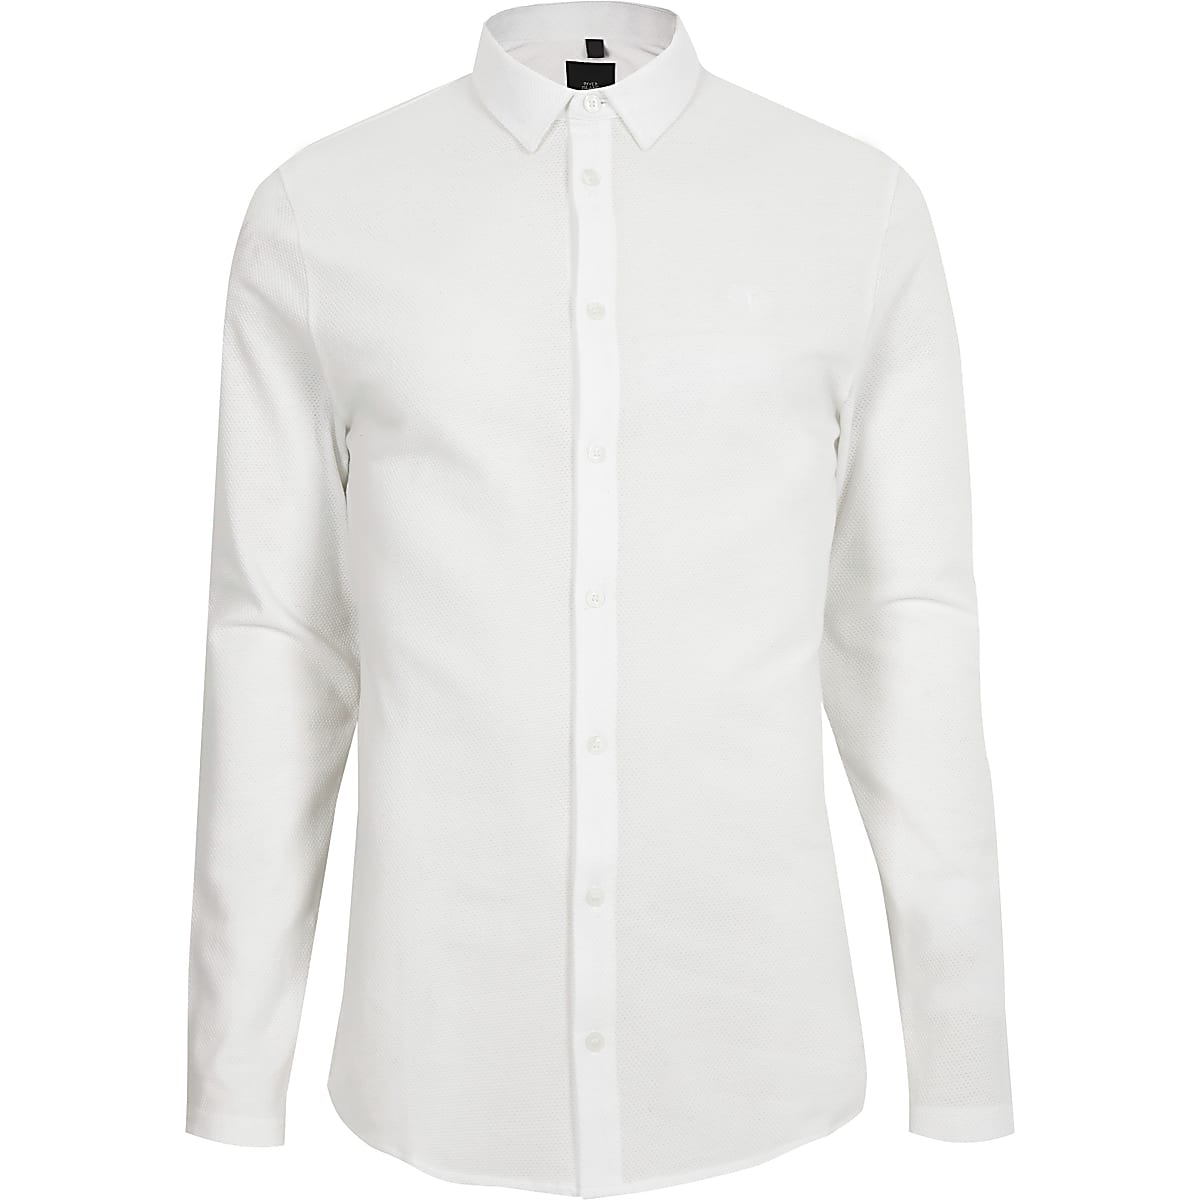 White button down textured shirt